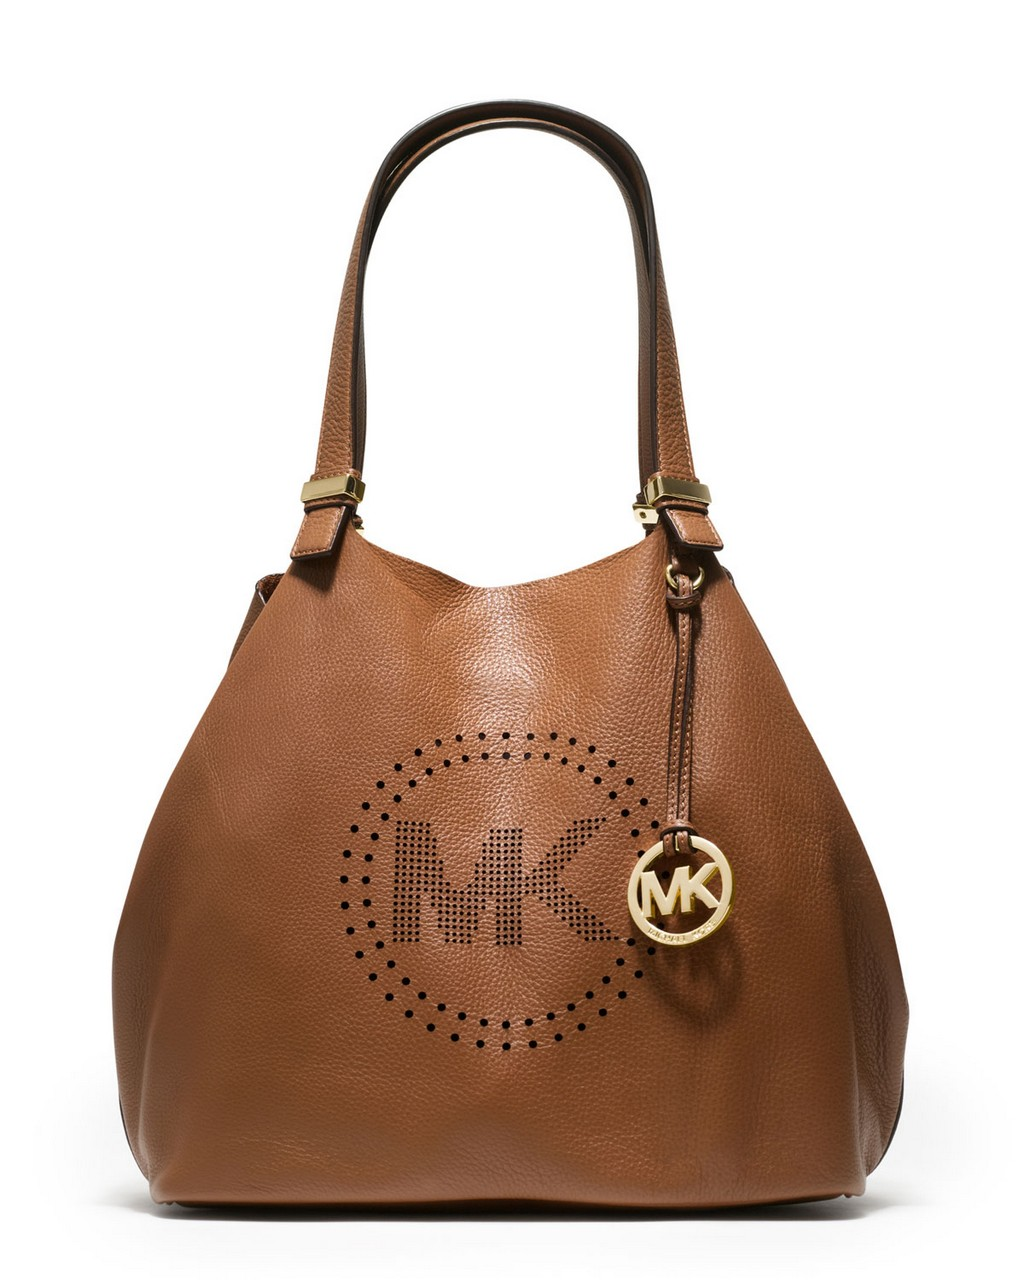 michael kors handbag black leather designer handbag designer handbag. Black Bedroom Furniture Sets. Home Design Ideas